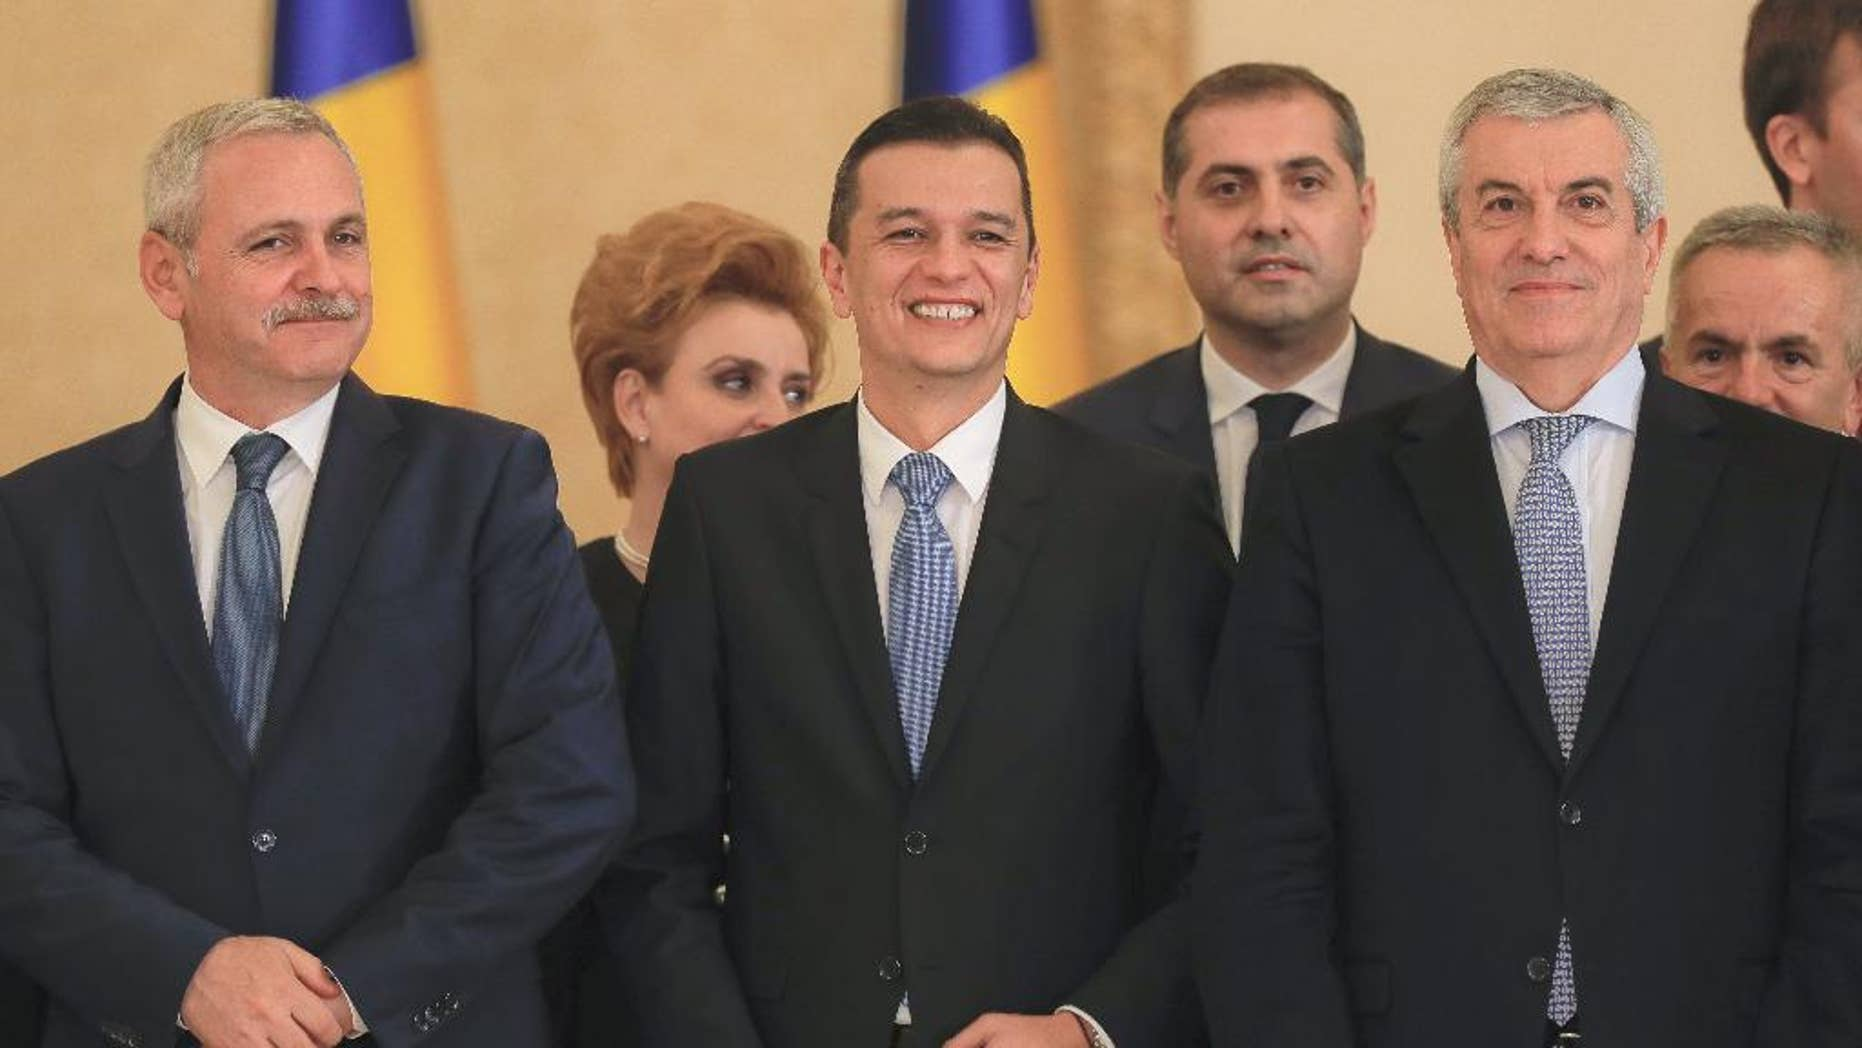 Romanian Prime Minister Sorin Grindeanu, center, smiles while standing between Liviu Dragnea, the leader of the Social Democratic party, left, and Calin Popescu Tariceanu, head of Romania's Senate, after the swearing in ceremony for his cabinet, in Bucharest, Romania, Wednesday, Jan. 4, 2017.  Iohannis swore in the new government shortly after it was voted in by parliament, urging it to guarantee an independent justice system and the rule of law, and strengthen its position within the European Union and NATO.(AP Photo/Vadim Ghirda)